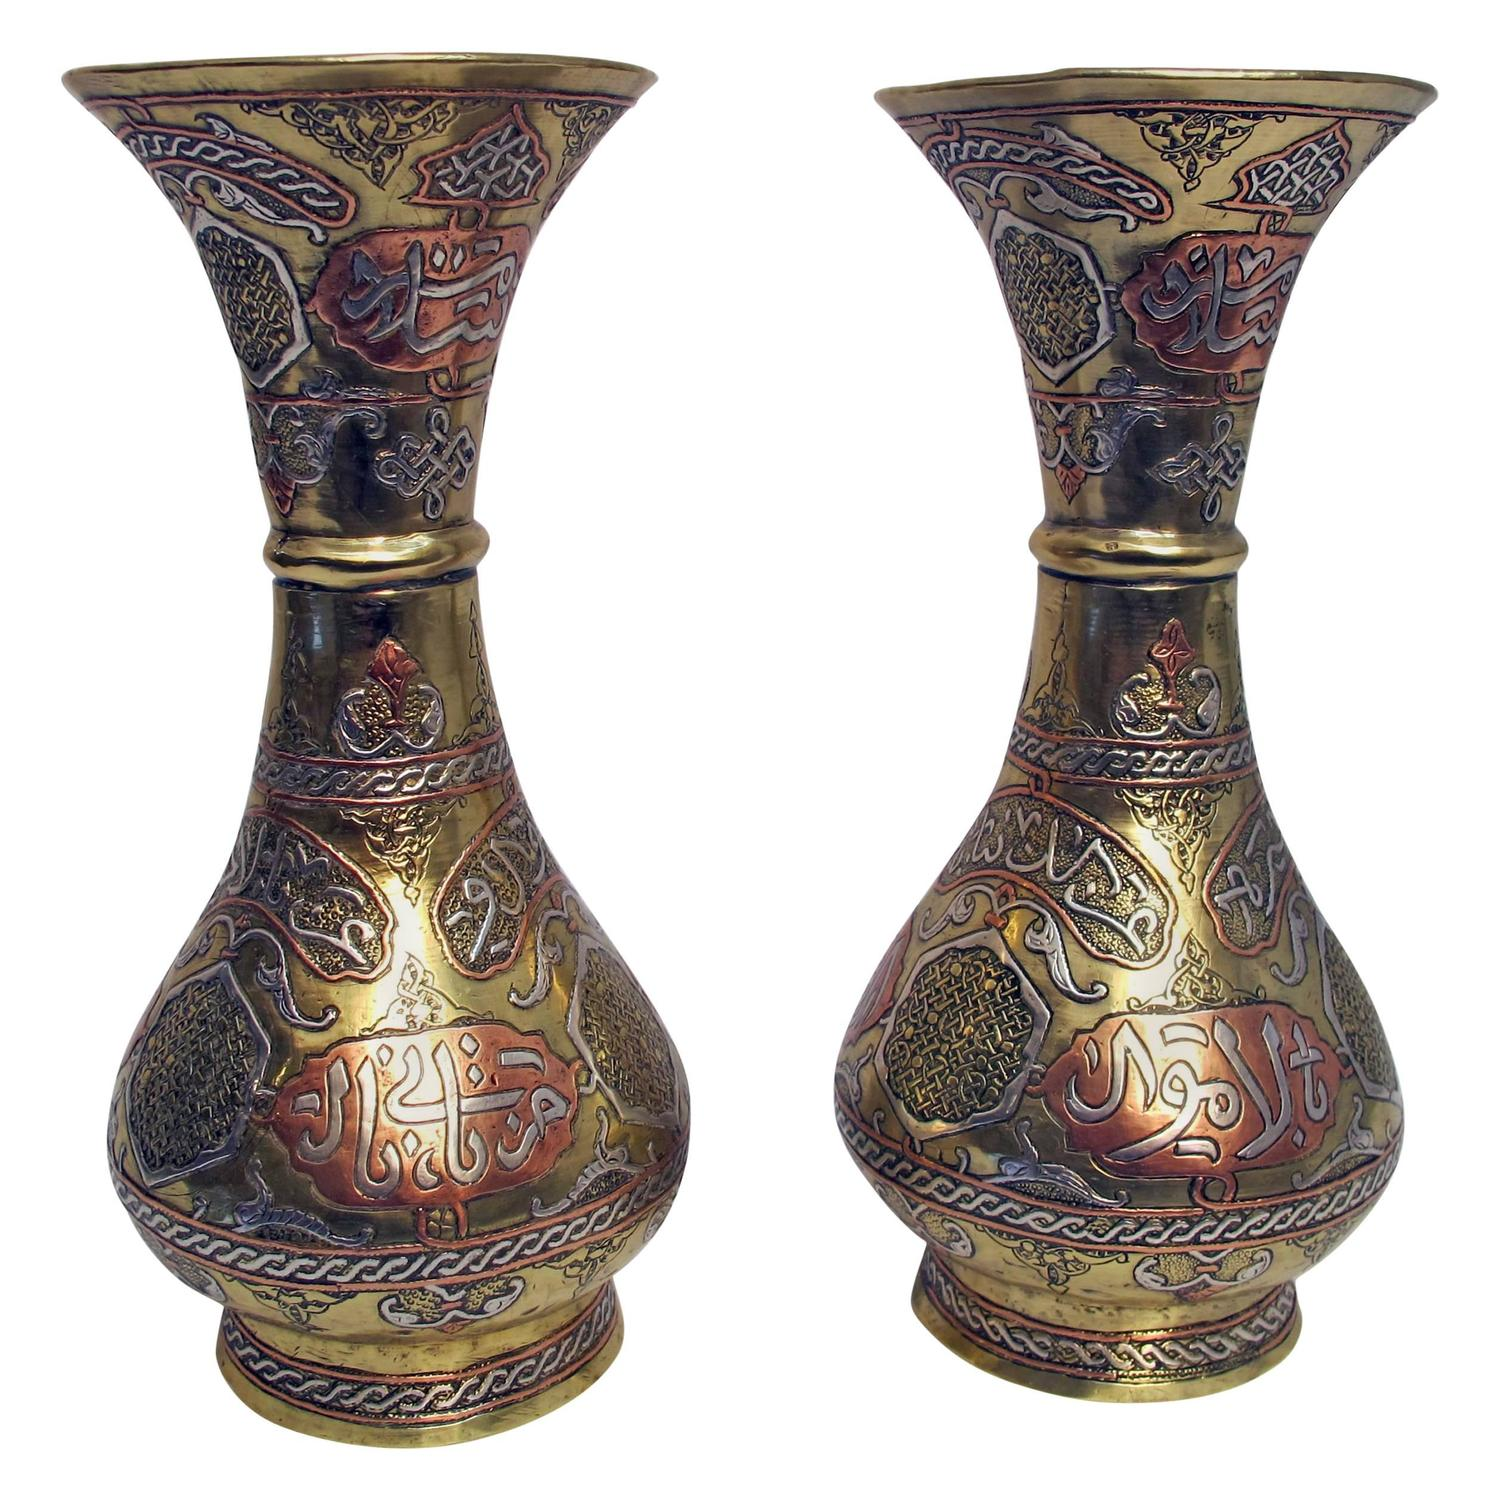 19th century persian brass silver and copper vases for sale at 1stdibs reviewsmspy